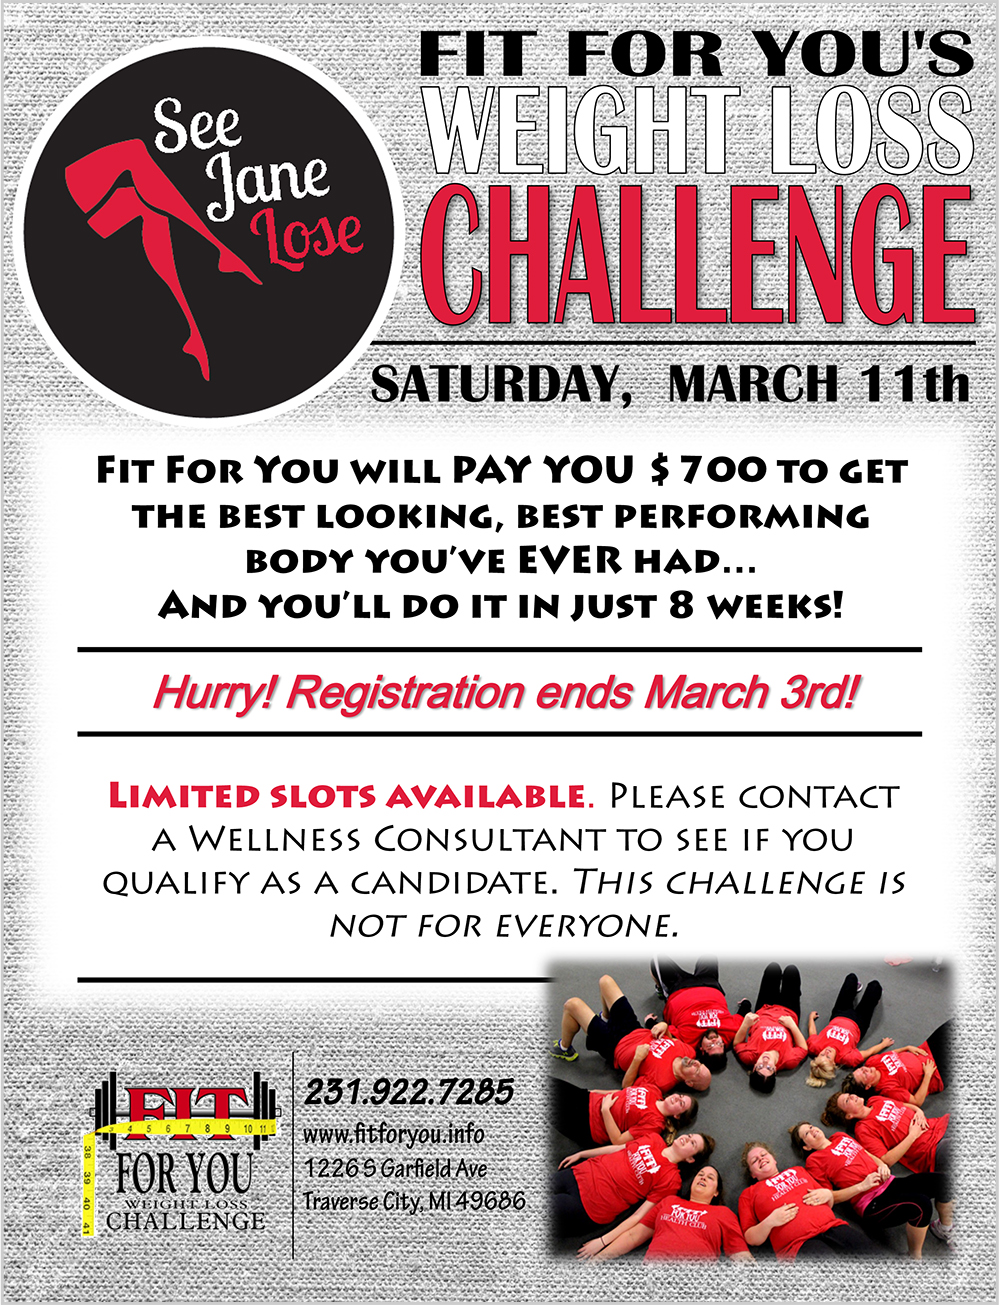 Fit for You Weight Loss Challenge